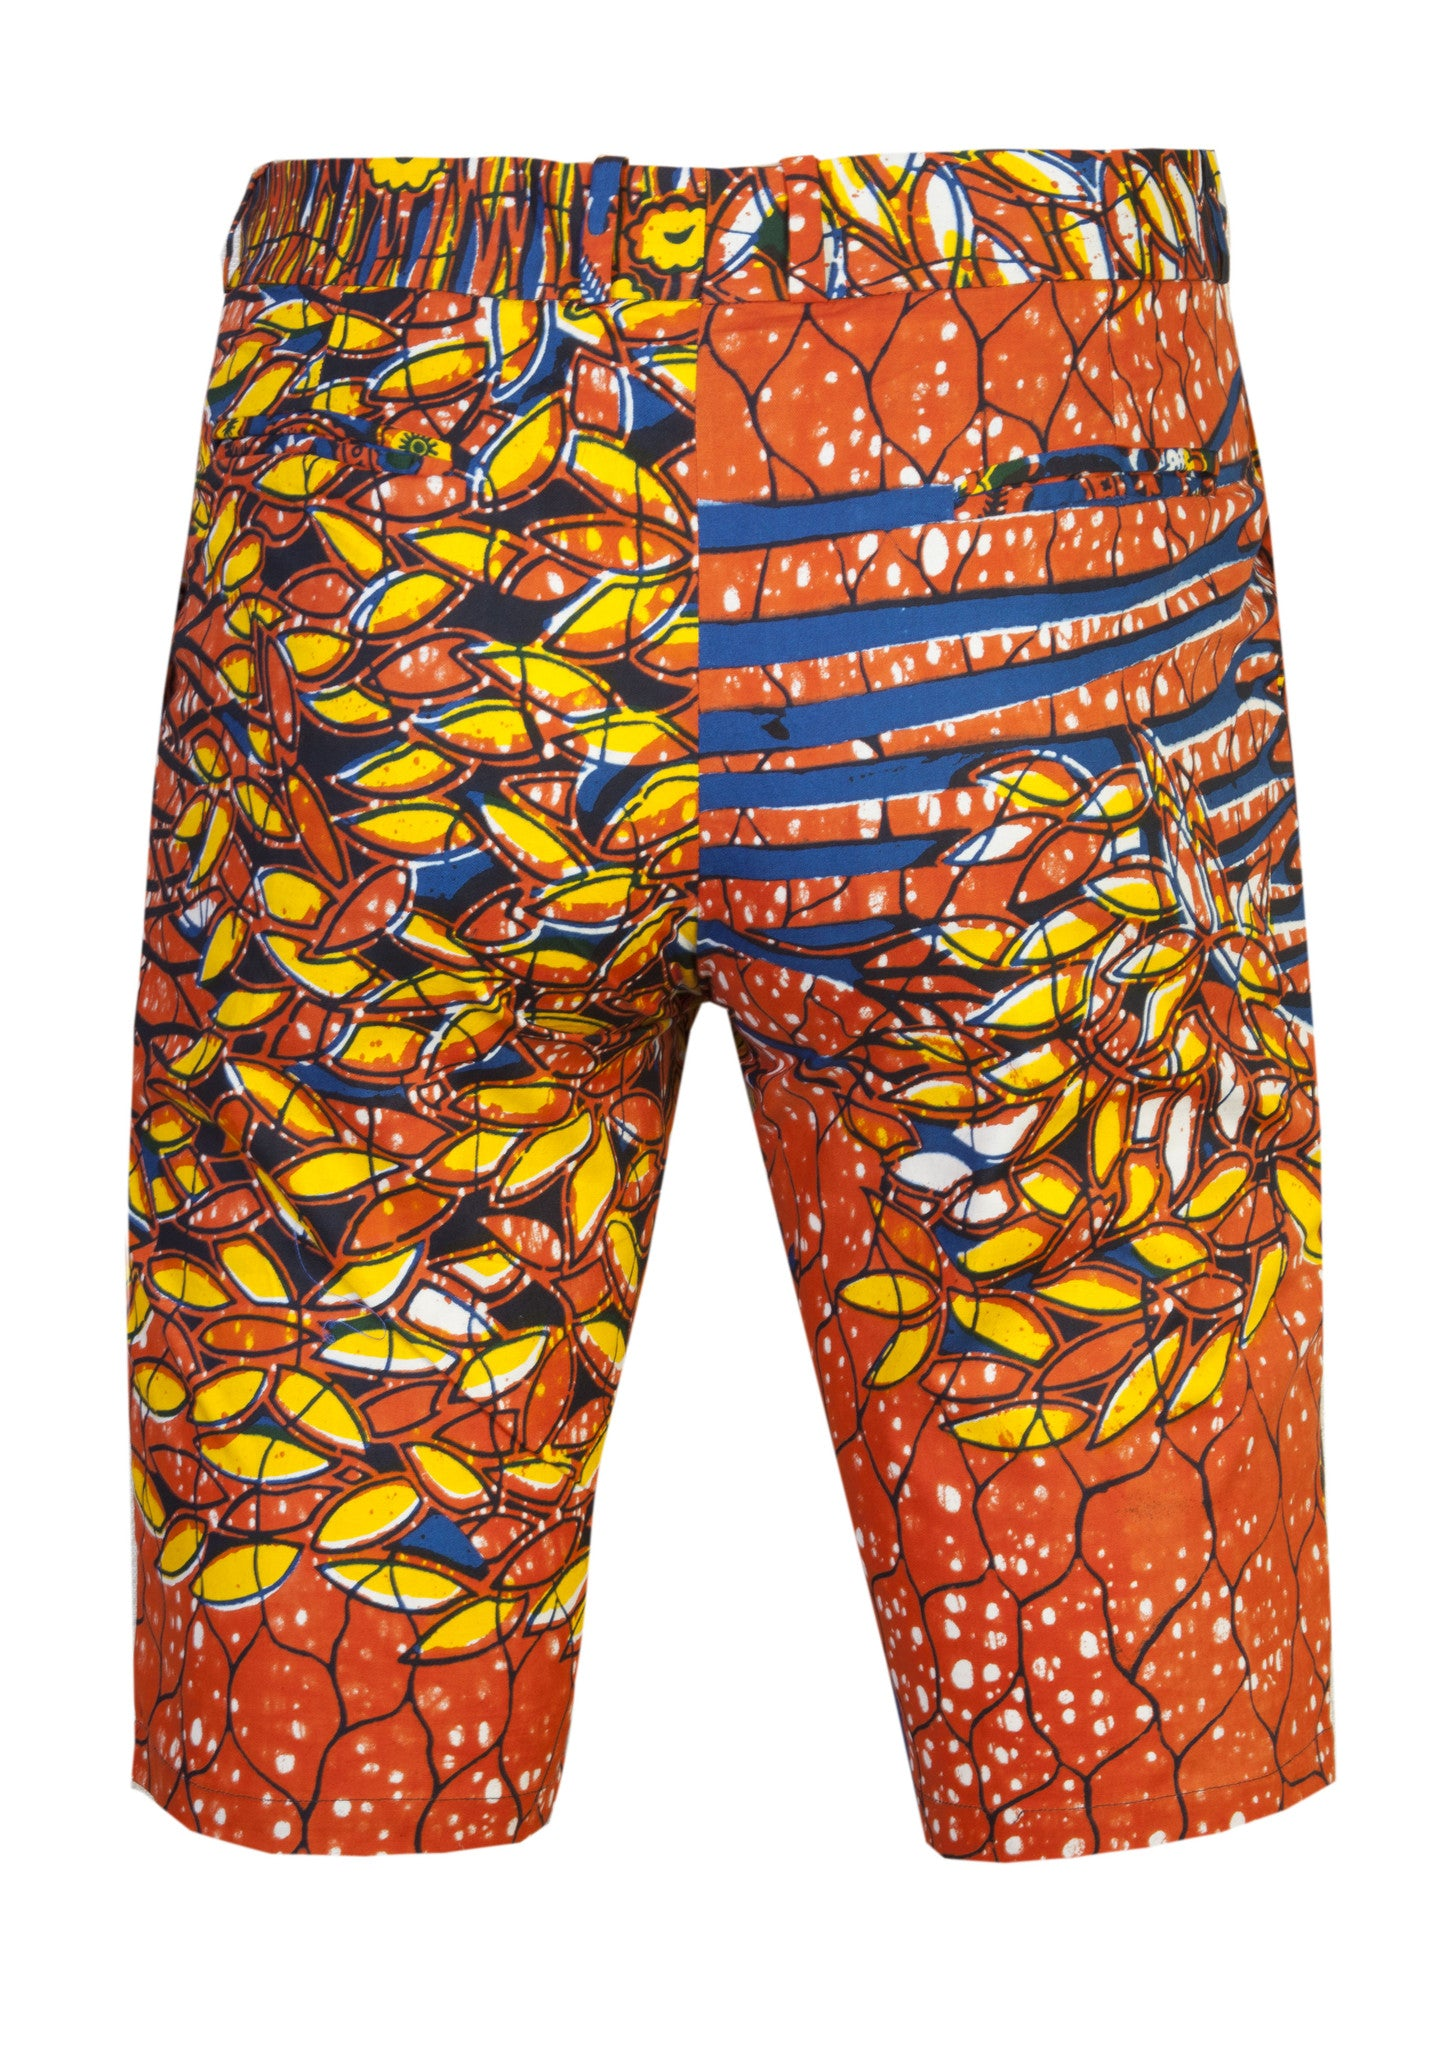 Jamie Men's Fitted African print shorts-'Ewasi' - OHEMA OHENE AFRICAN INSPIRED FASHION  - 2